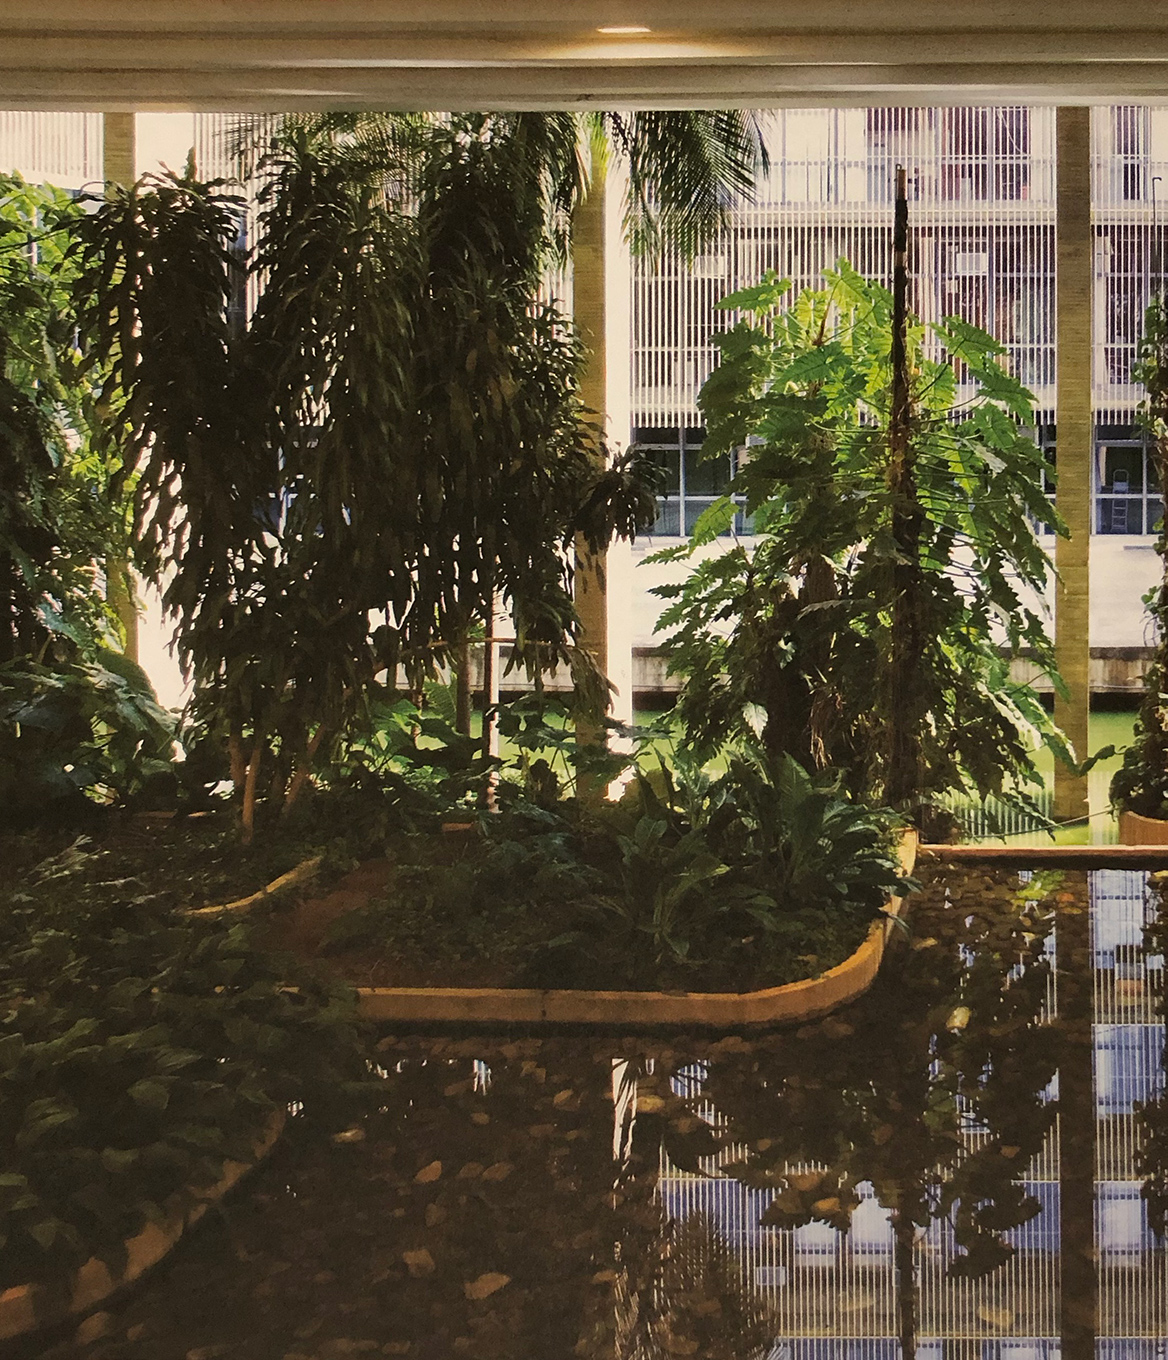 2. Roberto Burle Marx, Interior Gardens at Itamaraty Palace, Ministry of Foreign Affairs, 1965, Brasília.  Roberto Burle Marx Brazilian Modernist , 2015, The Jewish Museum, New York.